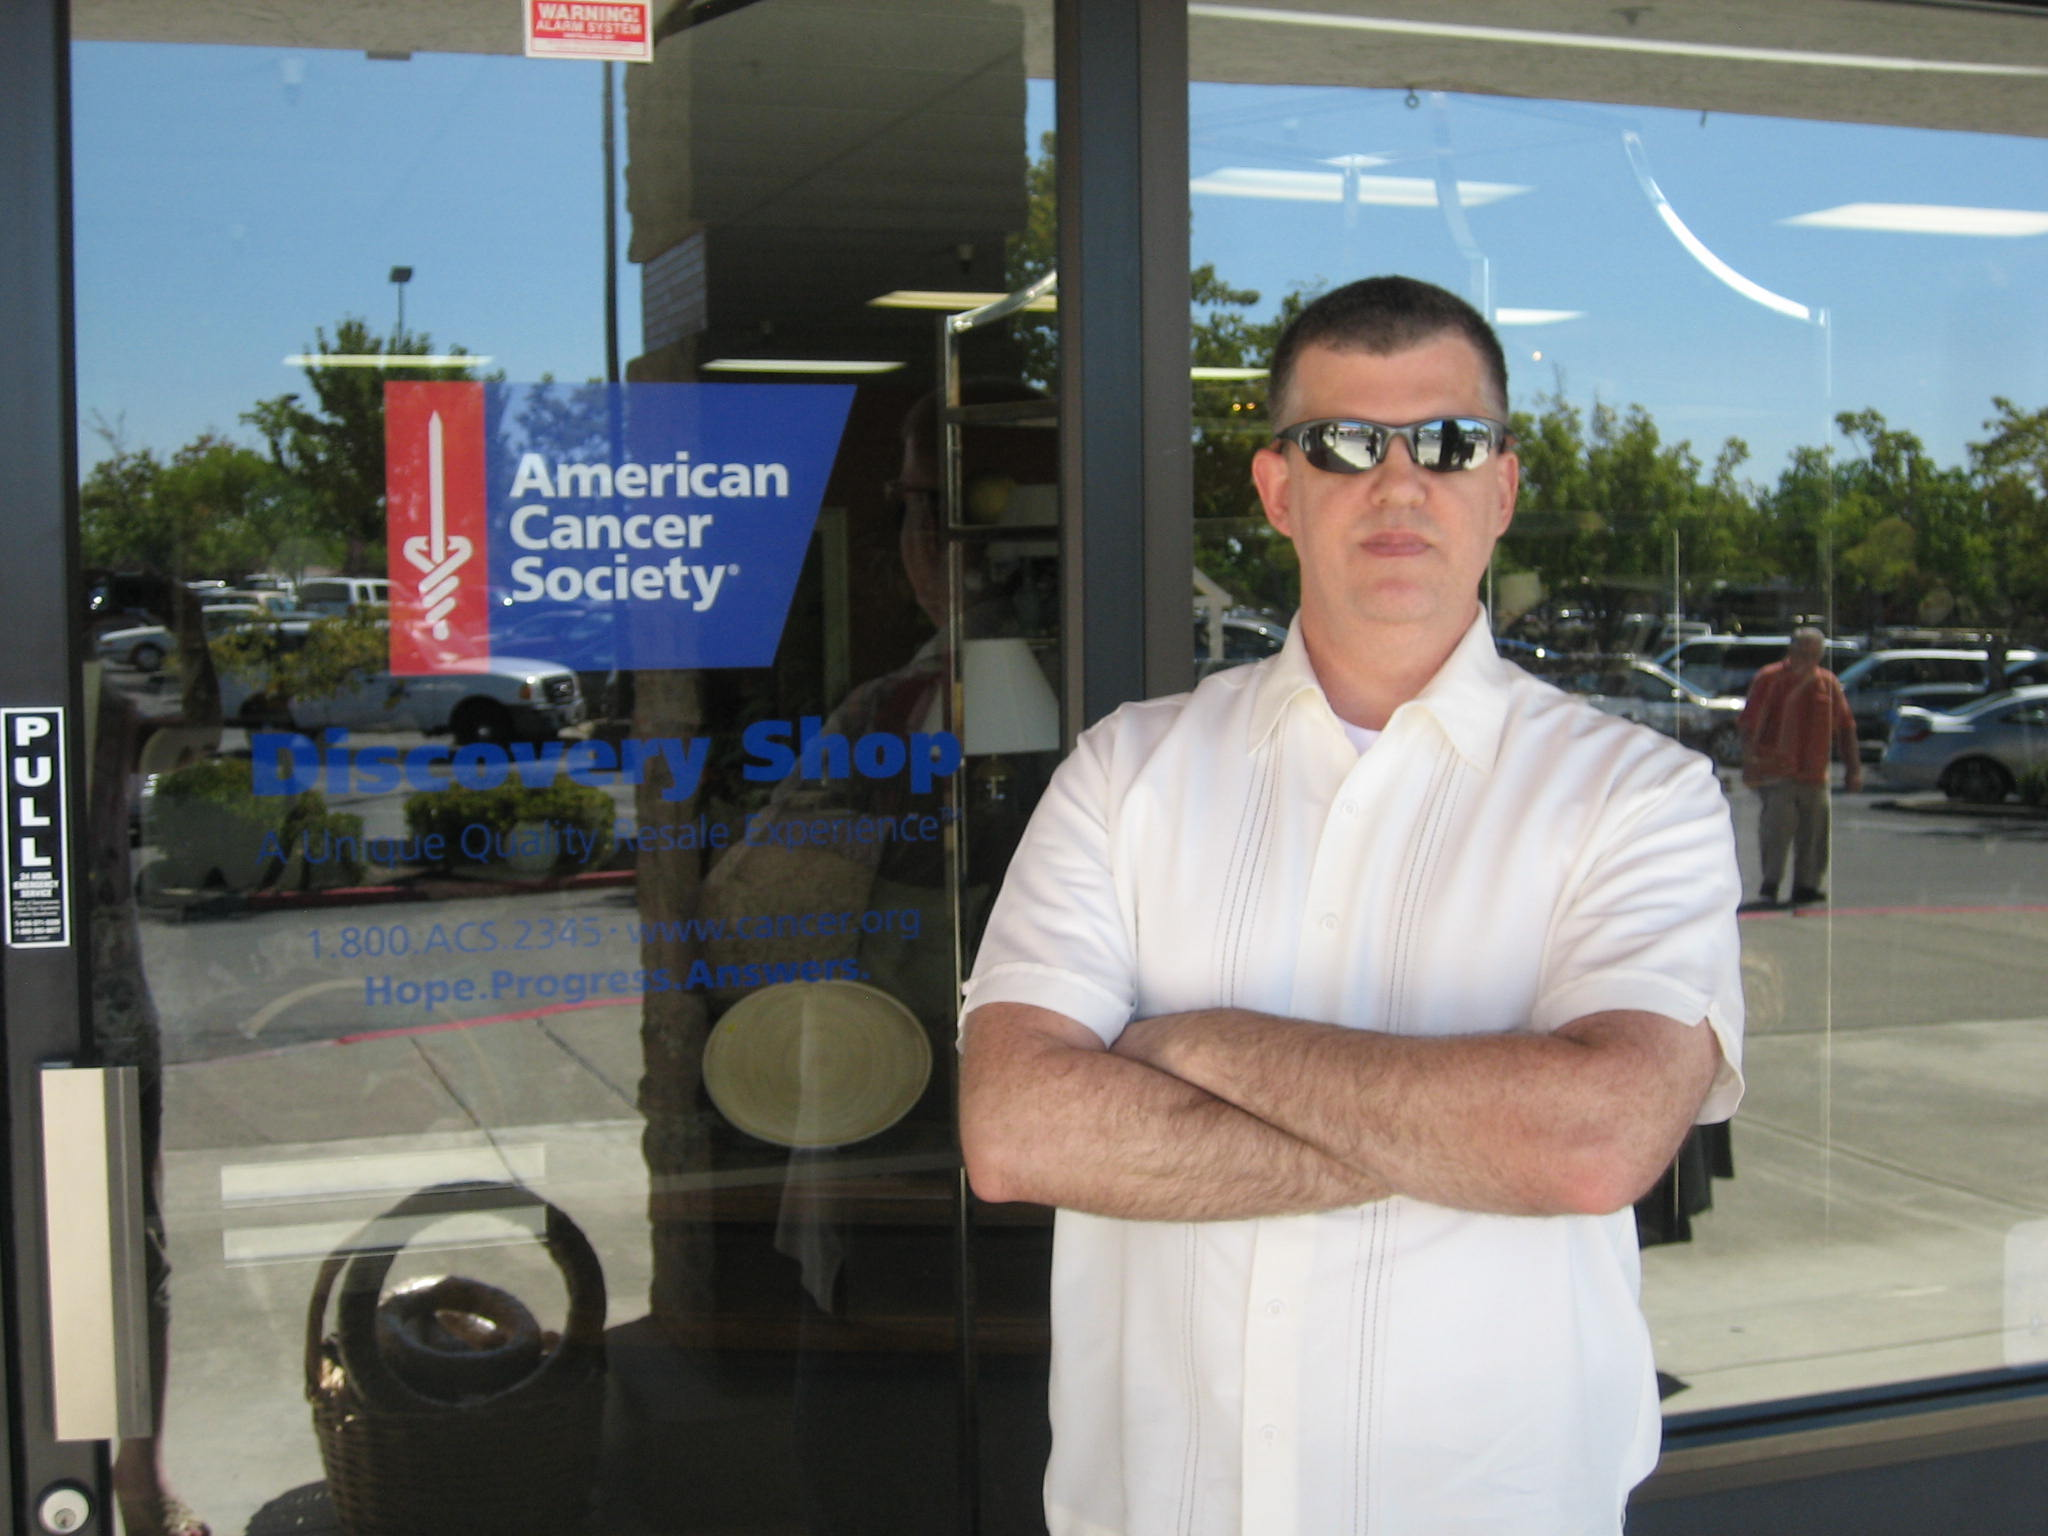 Me at the American Cancer Society in Roseville California.